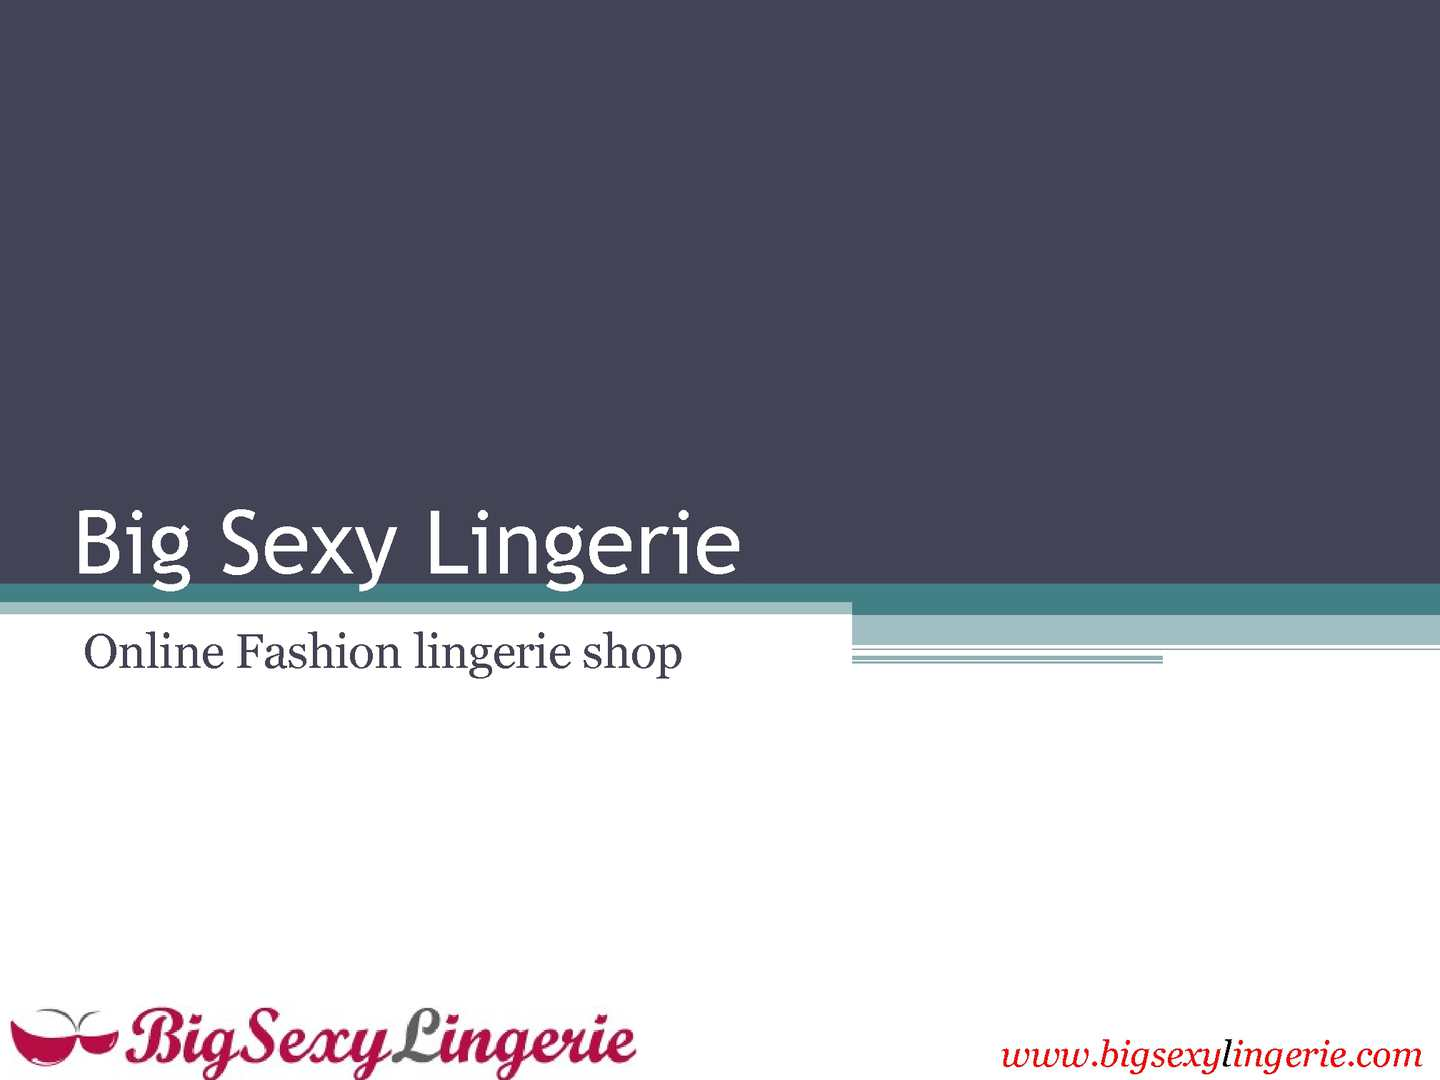 Quality Online lingerie for every size